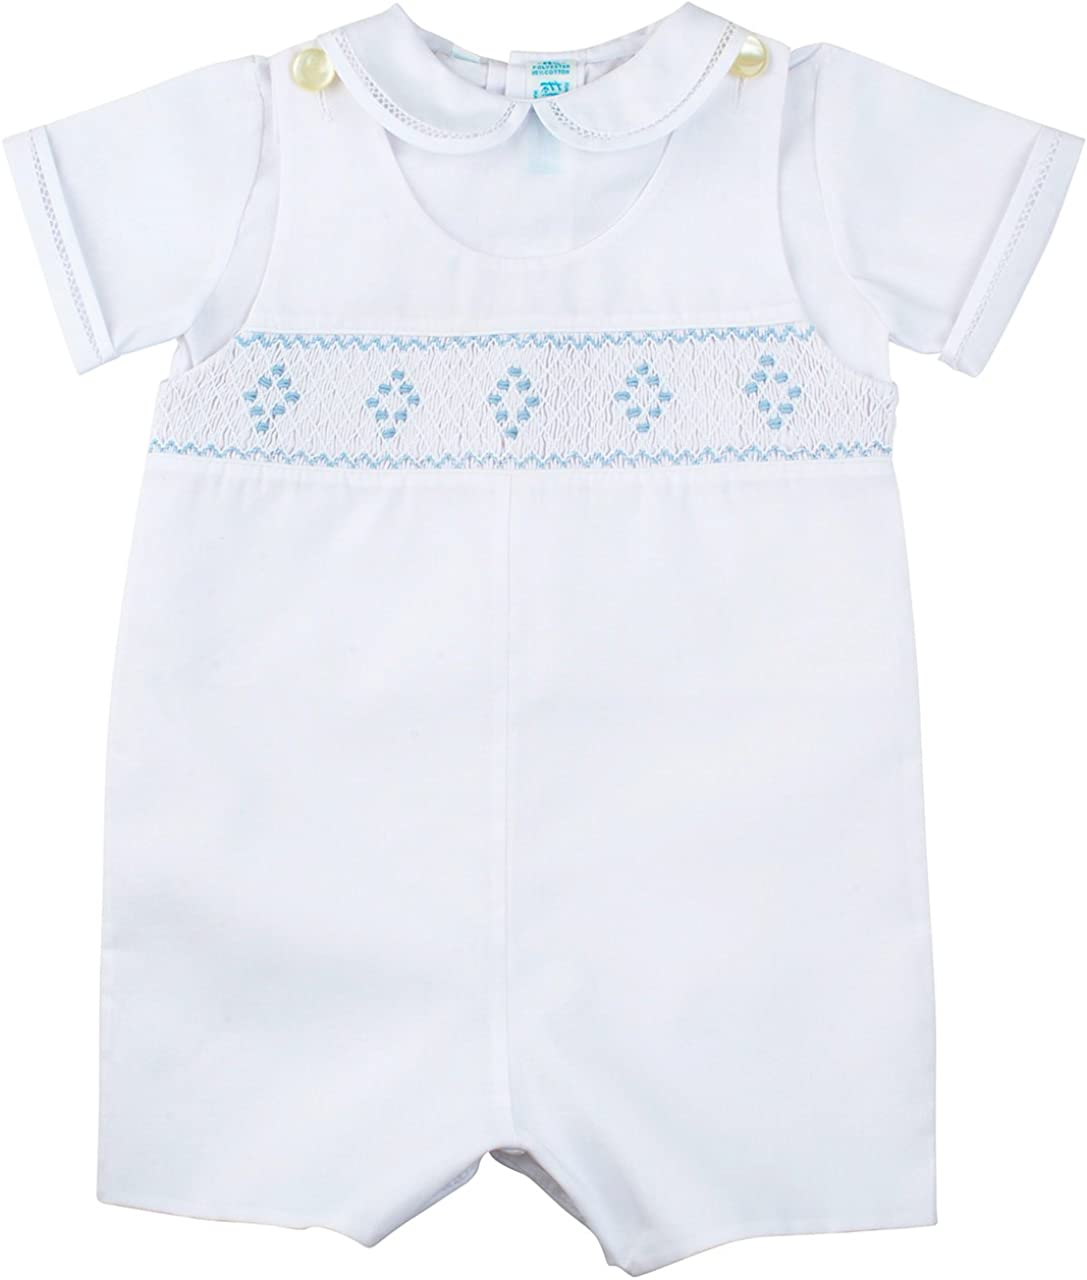 Feltman Brothers Baby Boys White and Blue Smocked Shortall Outfit with Shirt